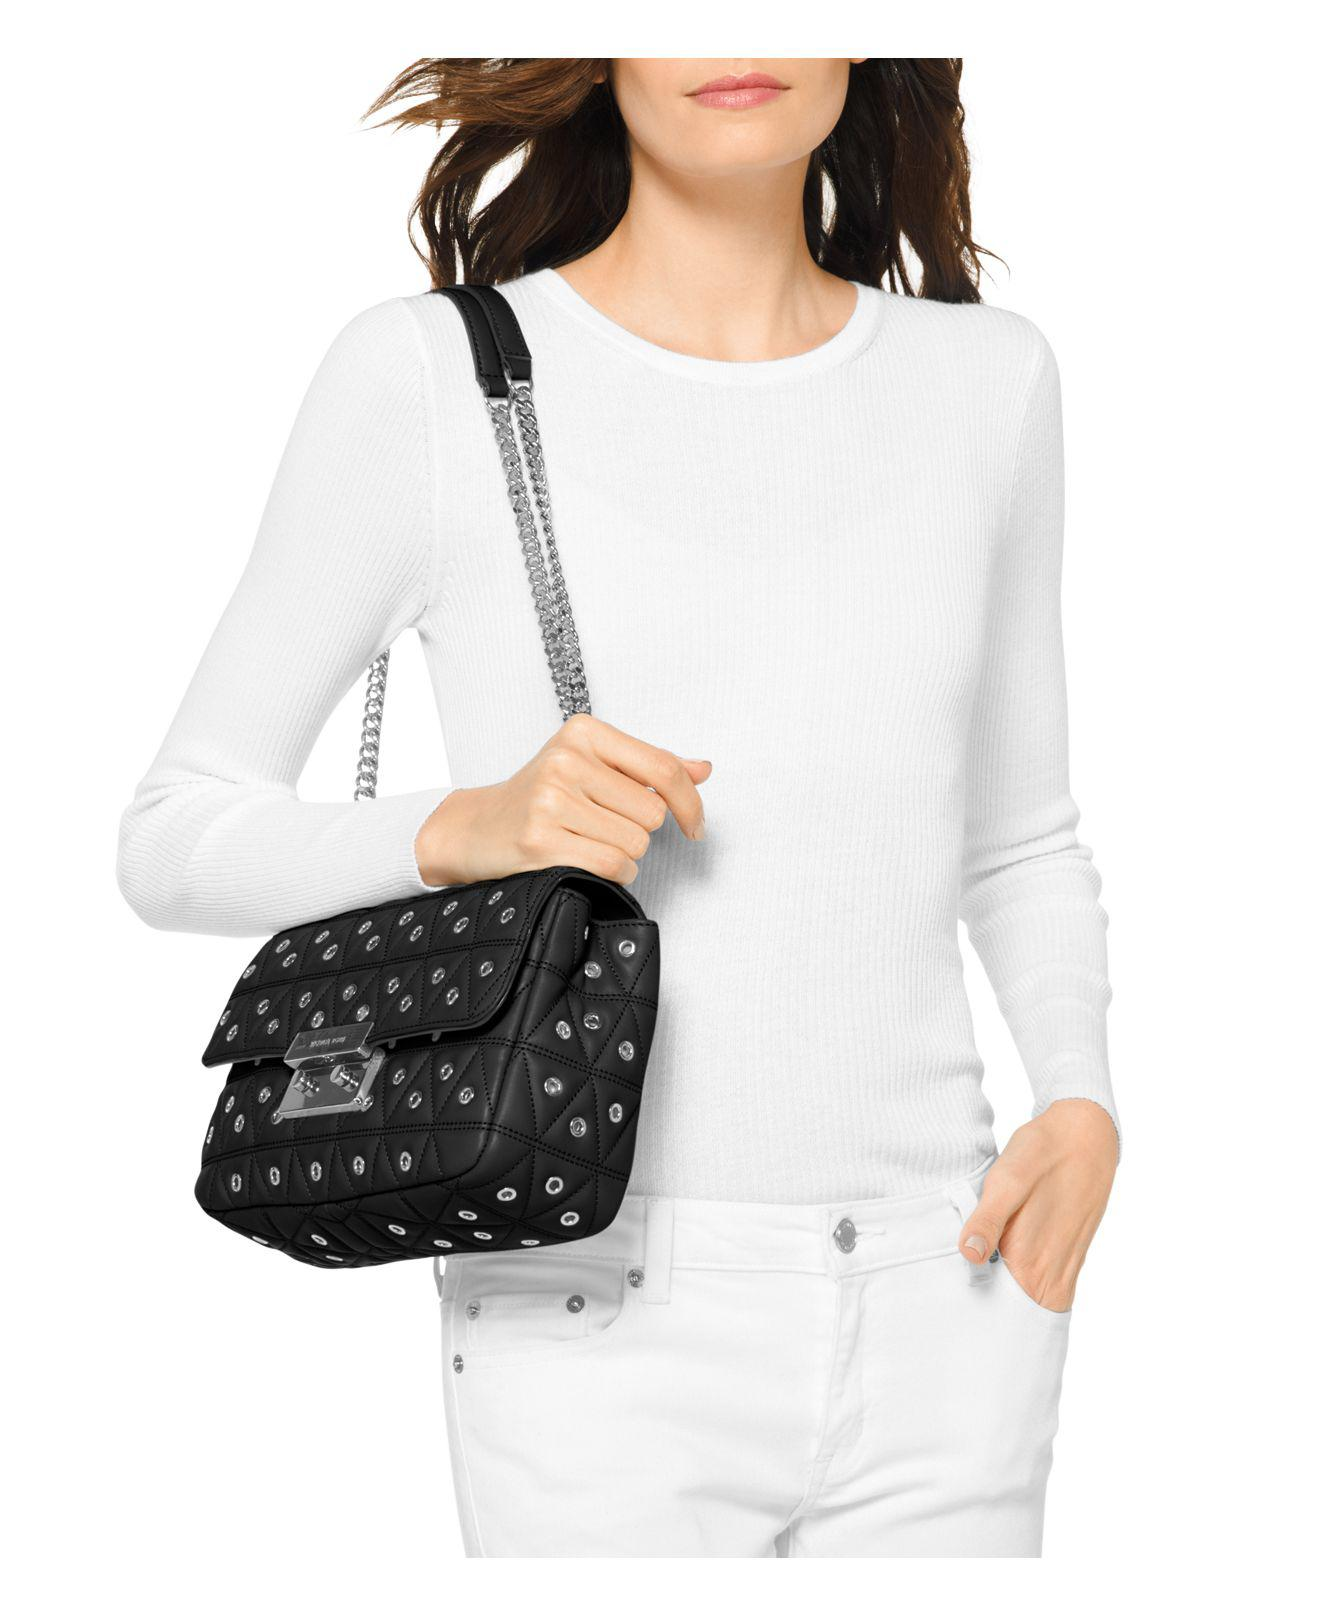 c80a5a91c0b9 Gallery. Previously sold at: Bloomingdale's · Women's Michael By Michael  Kors Sloan Women's Michael Kors Quilted Bag